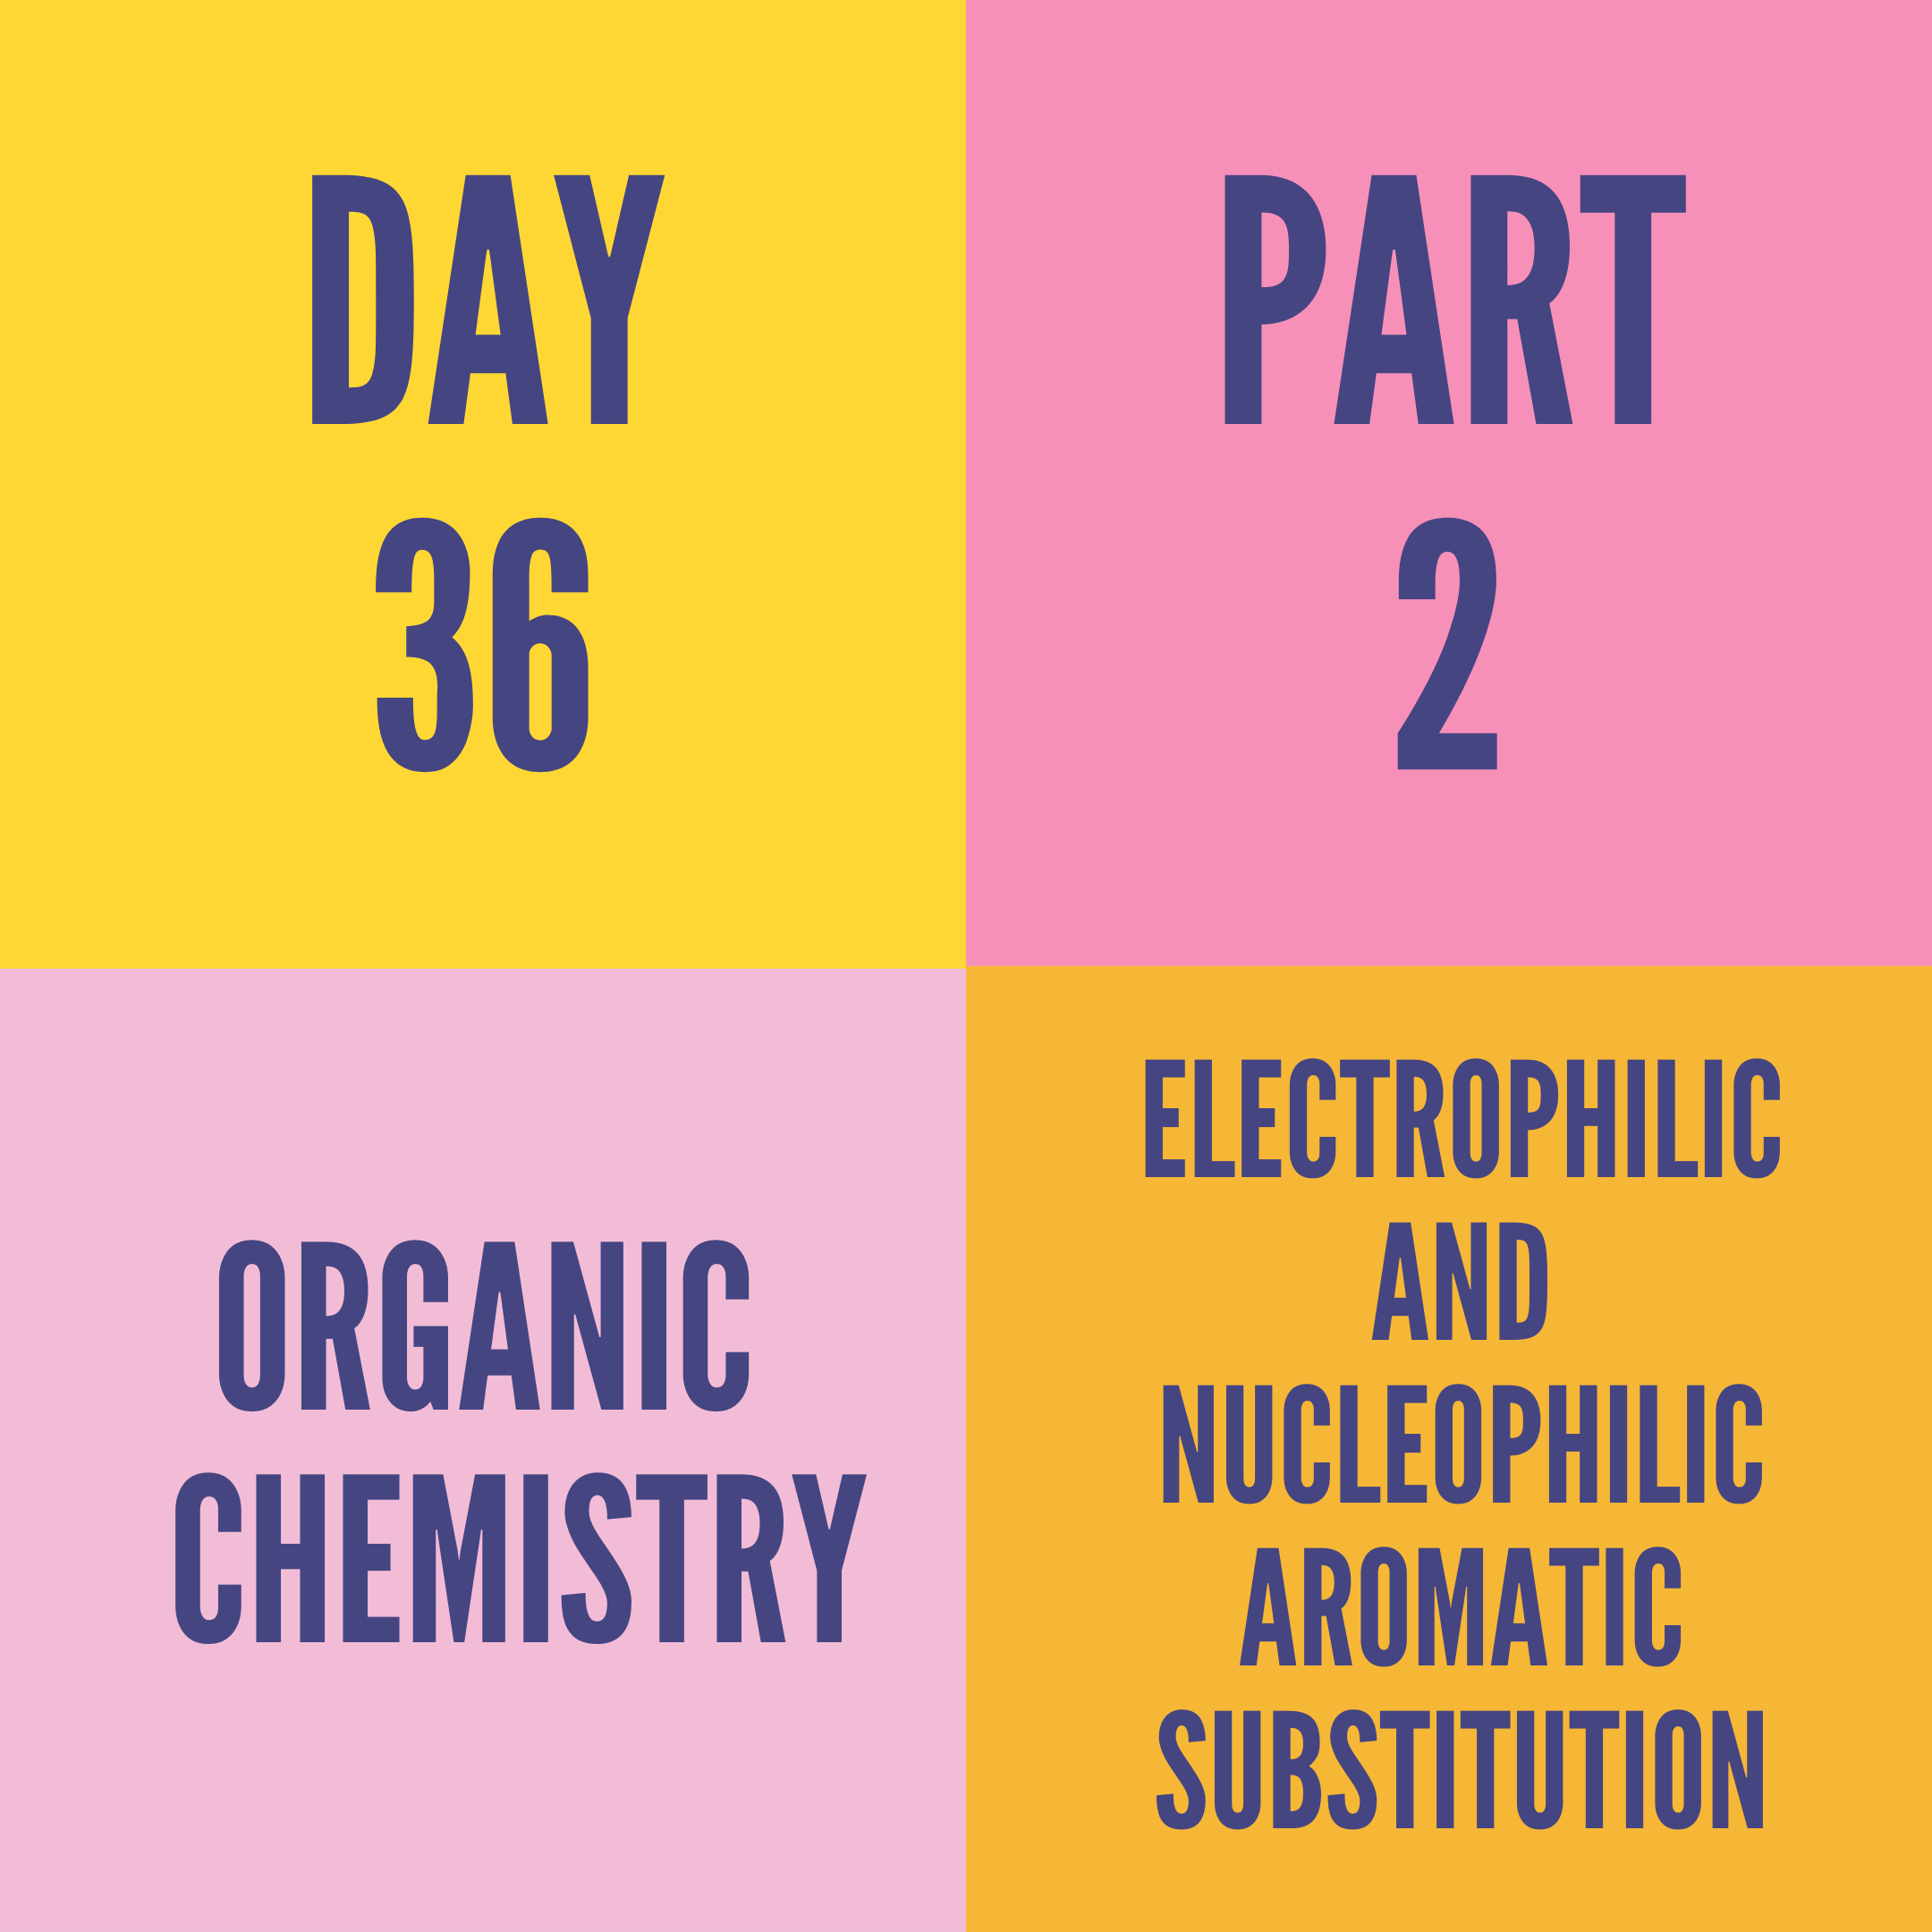 DAY-36 PART-2 ELECTROPHILIC AND NUCLEOPHILIC AROMATIC SUBSTITUTION